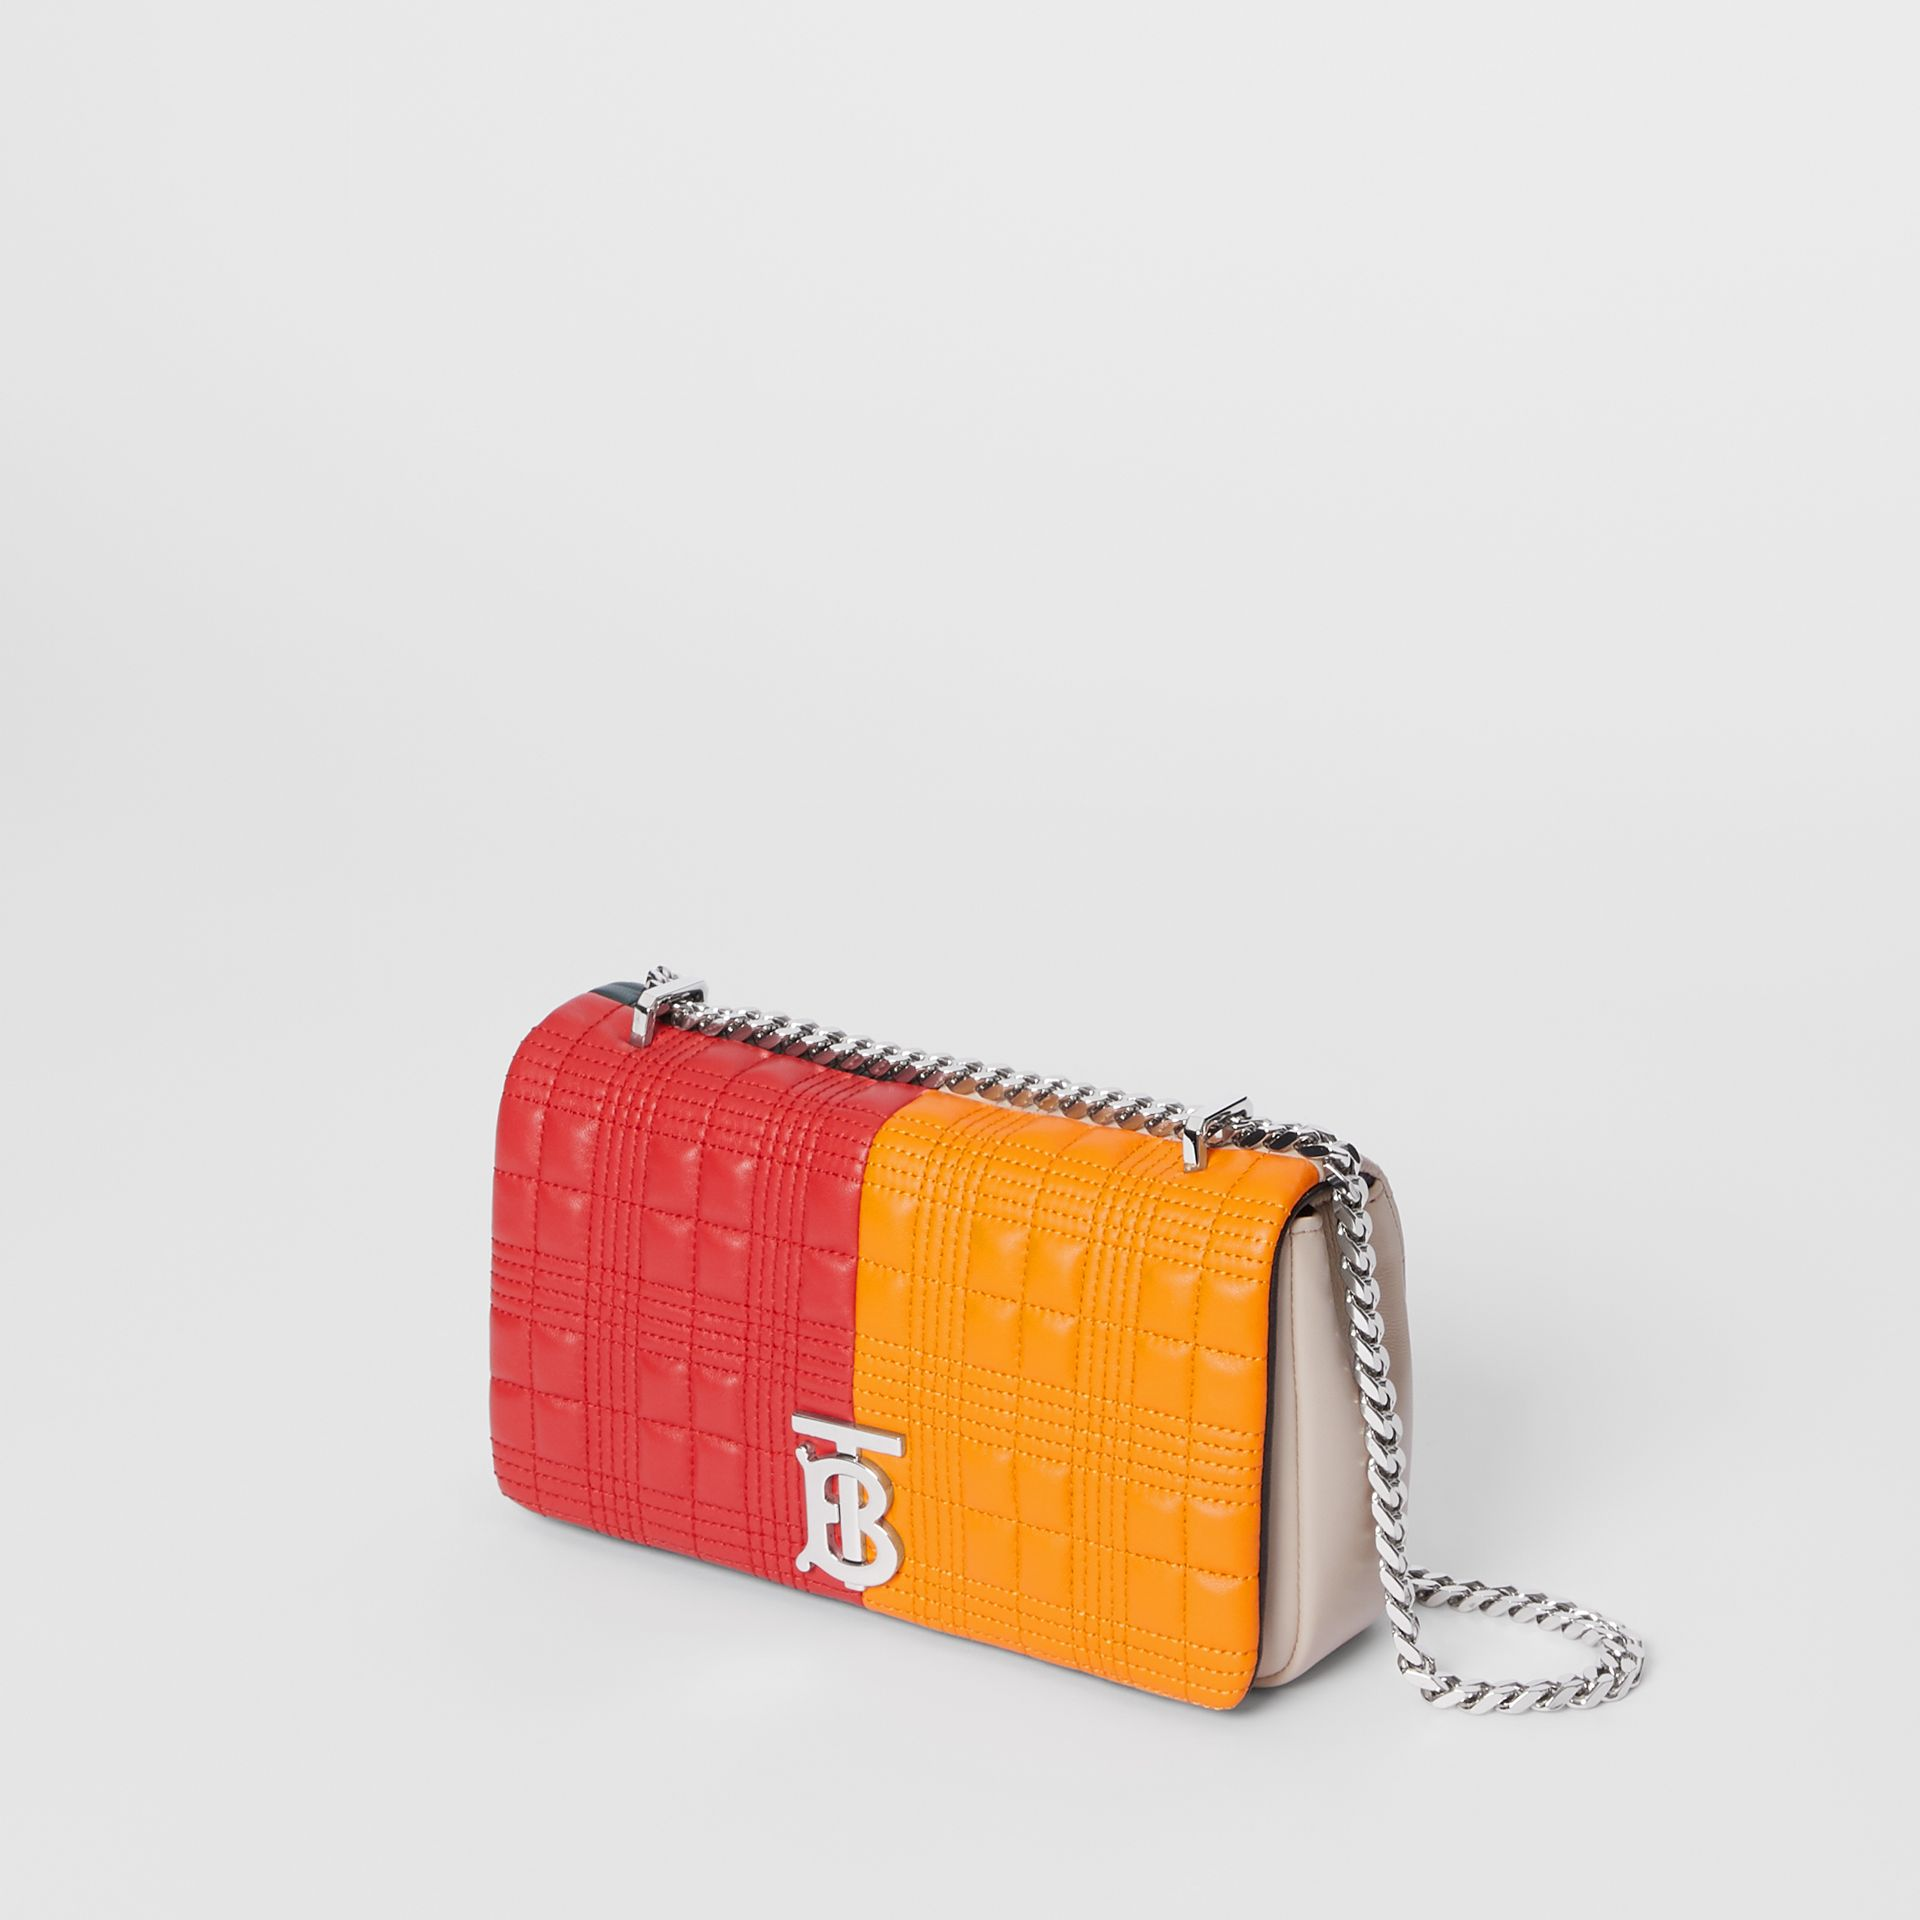 Small Quilted Check Colour Block Lambskin Lola Bag in Bright Red/orange - Women | Burberry - gallery image 3